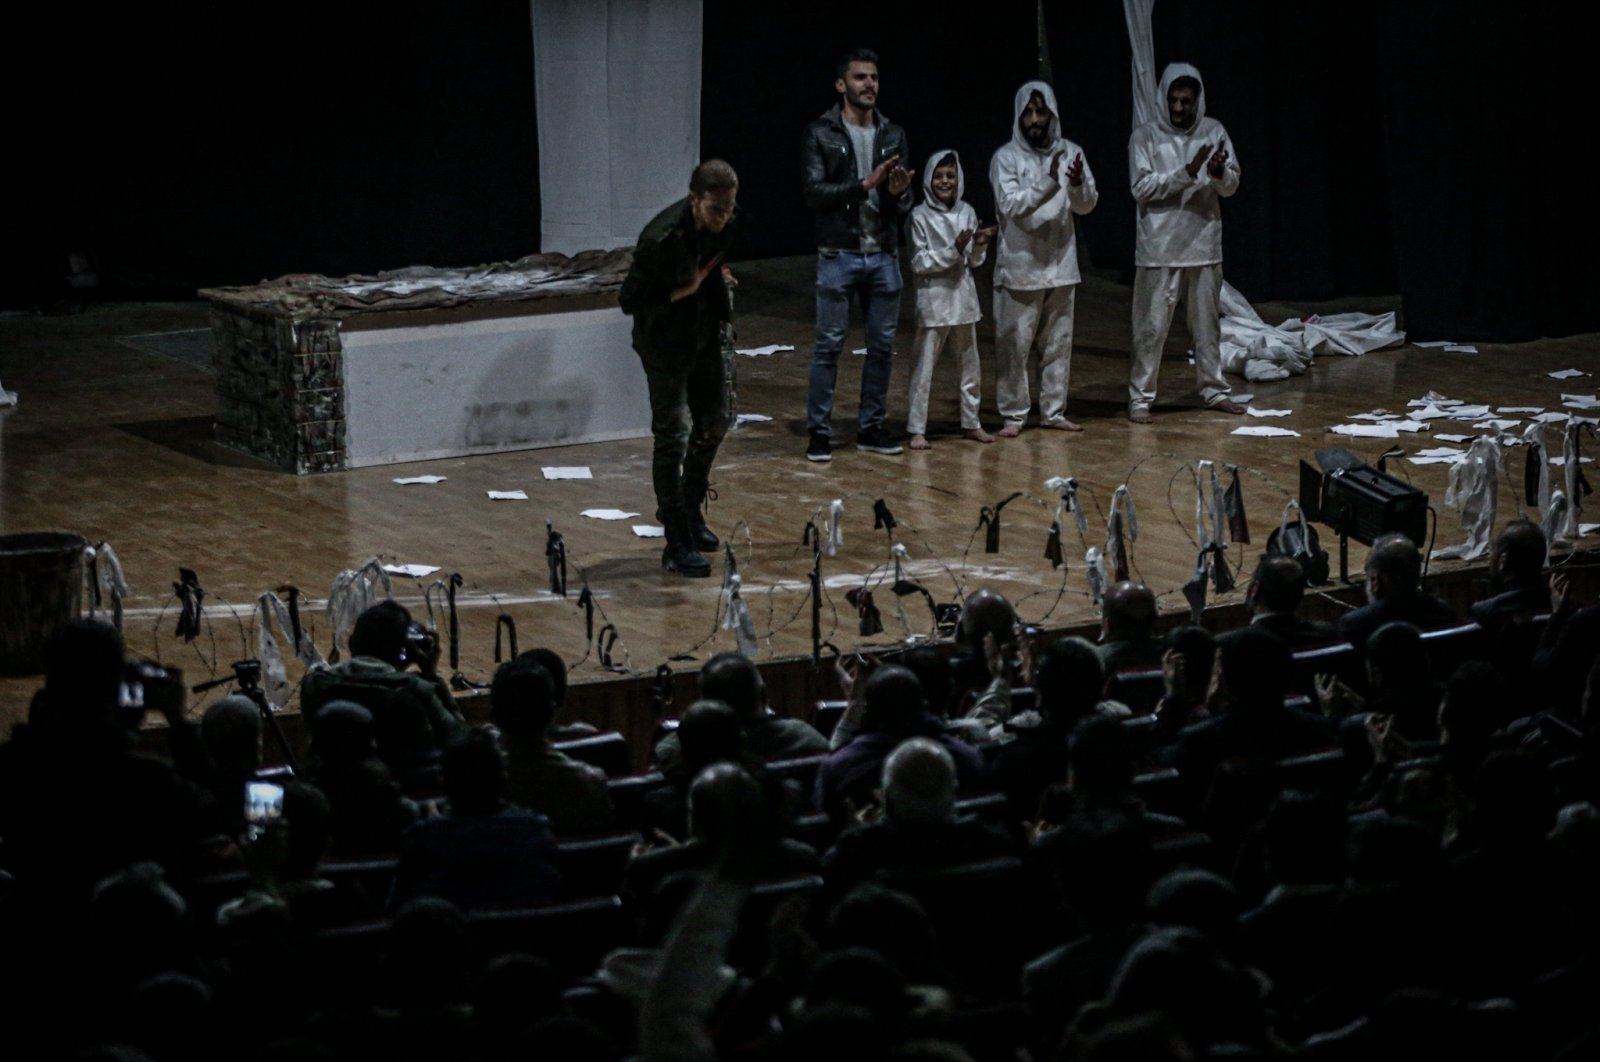 Syrian actors stage a play describing conditions in prisons of the Bashar Assad regime, Idlib, Syria, March 28, 2021. (AA Photo)